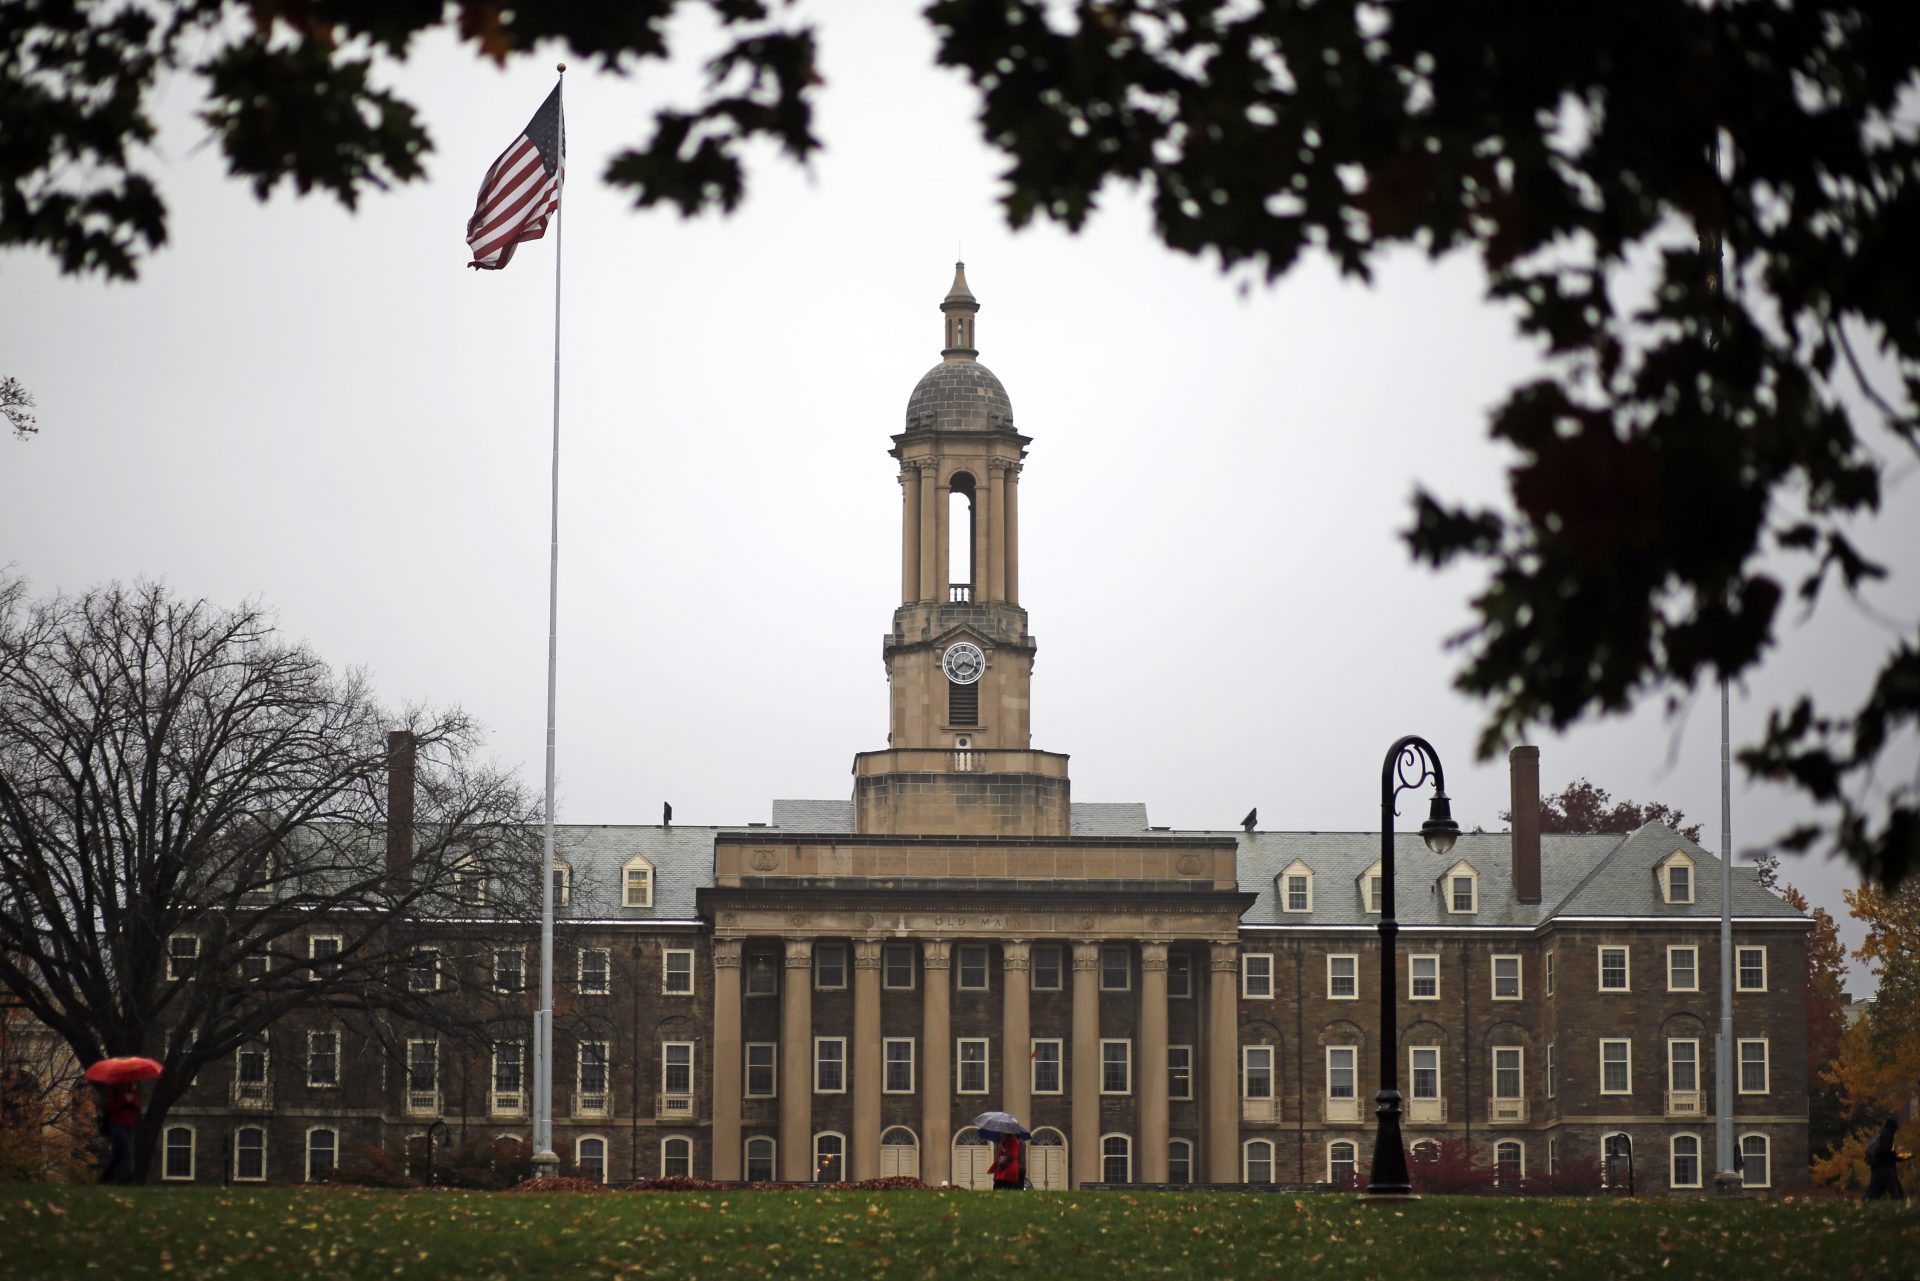 FILE PHOTO: A Penn State student walks in the rain past Old Main on the Penn State main campus in State College, Pa., Wednesday, Oct. 28, 2015.